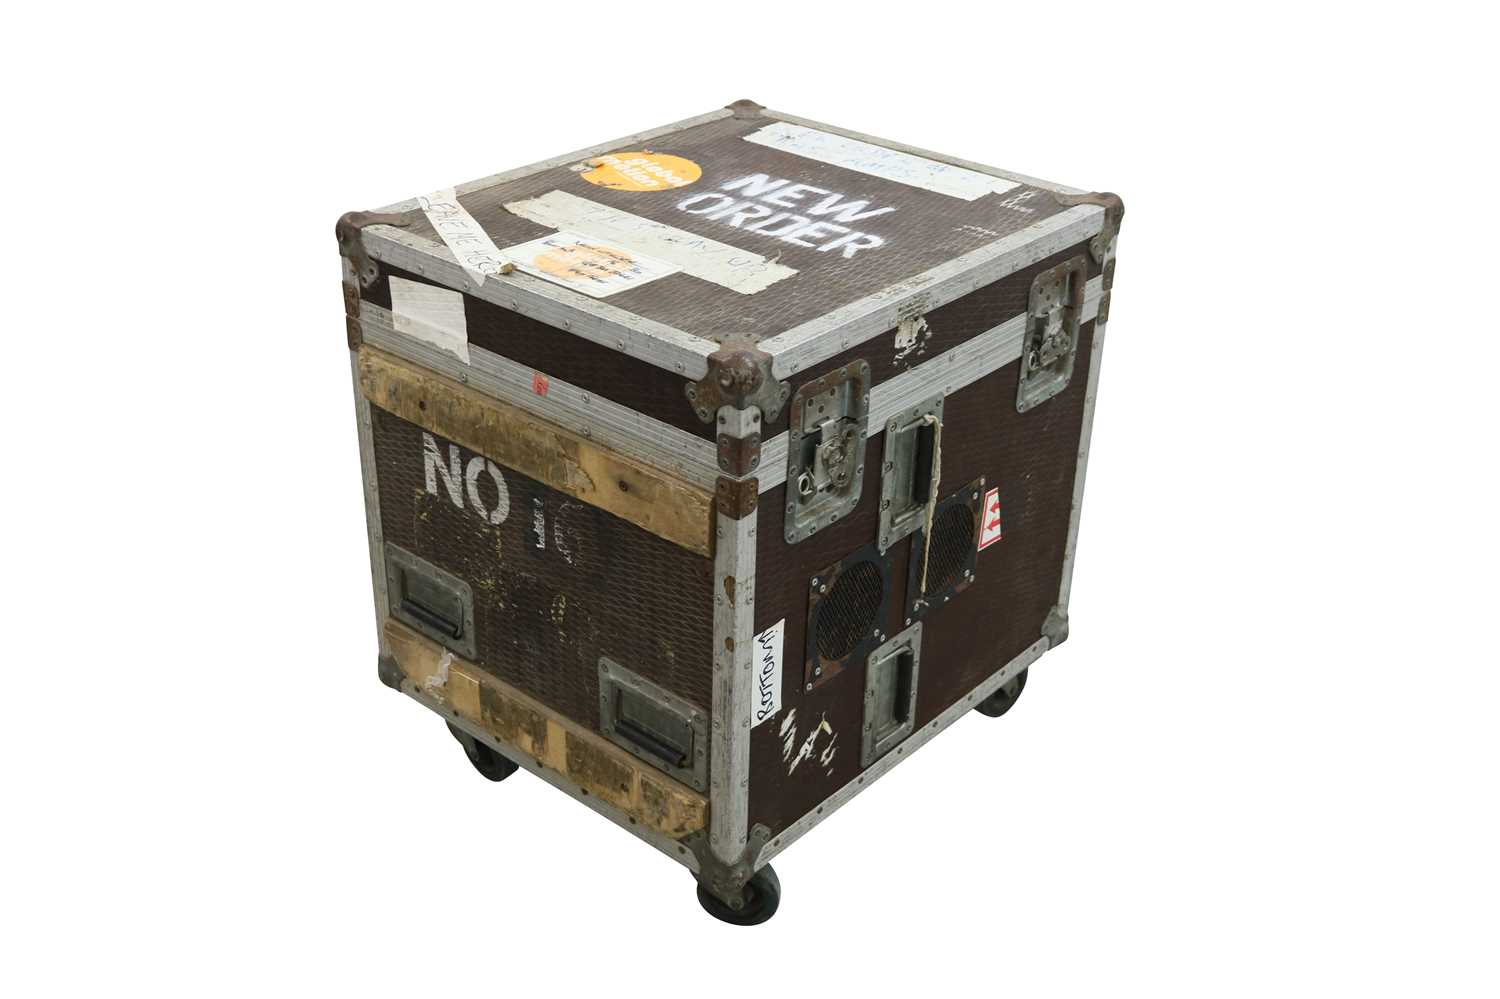 NEW ORDER BASS AMPS FLIGHT CASE - Image 2 of 3